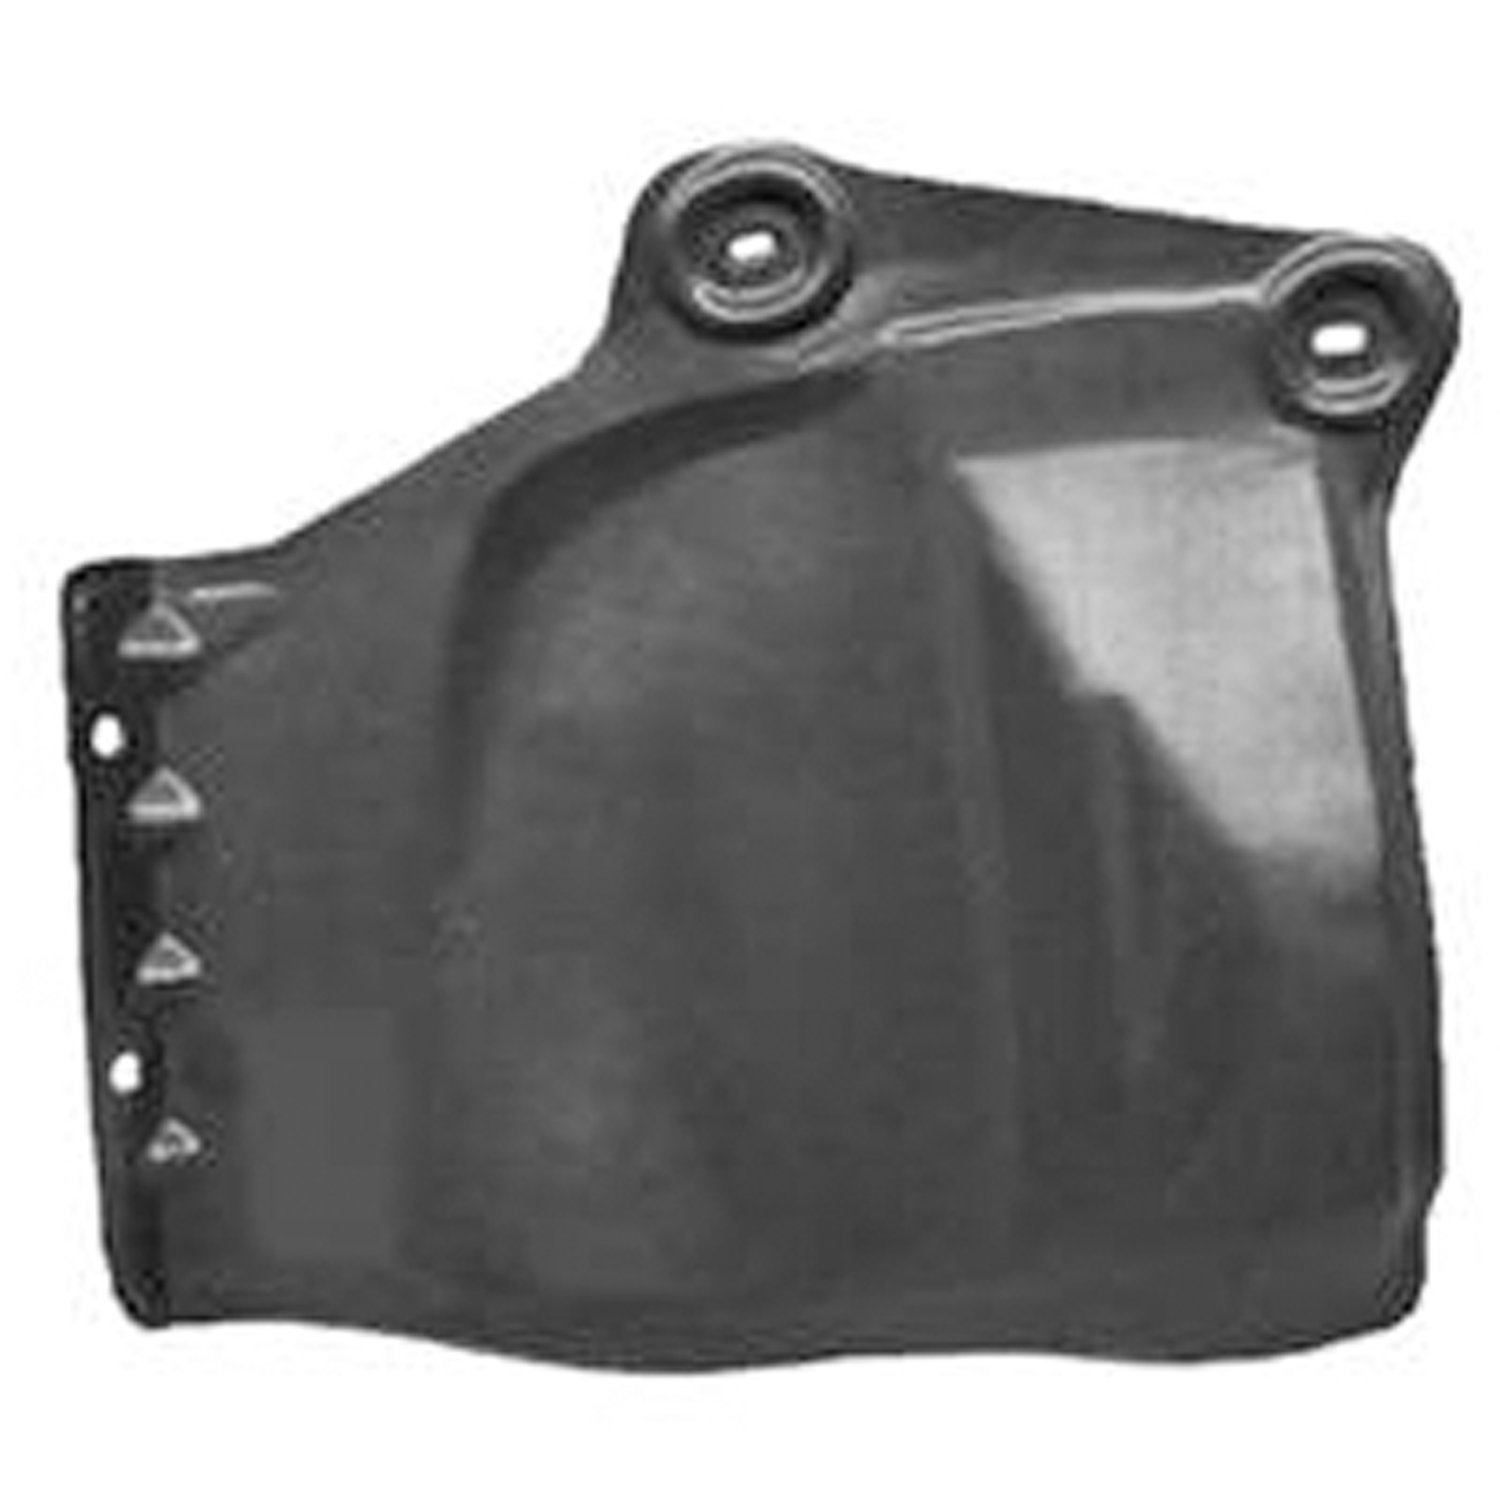 Crash Parts Plus NI1228130 Left Lower Engine Cover for Nissan Murano, Quest